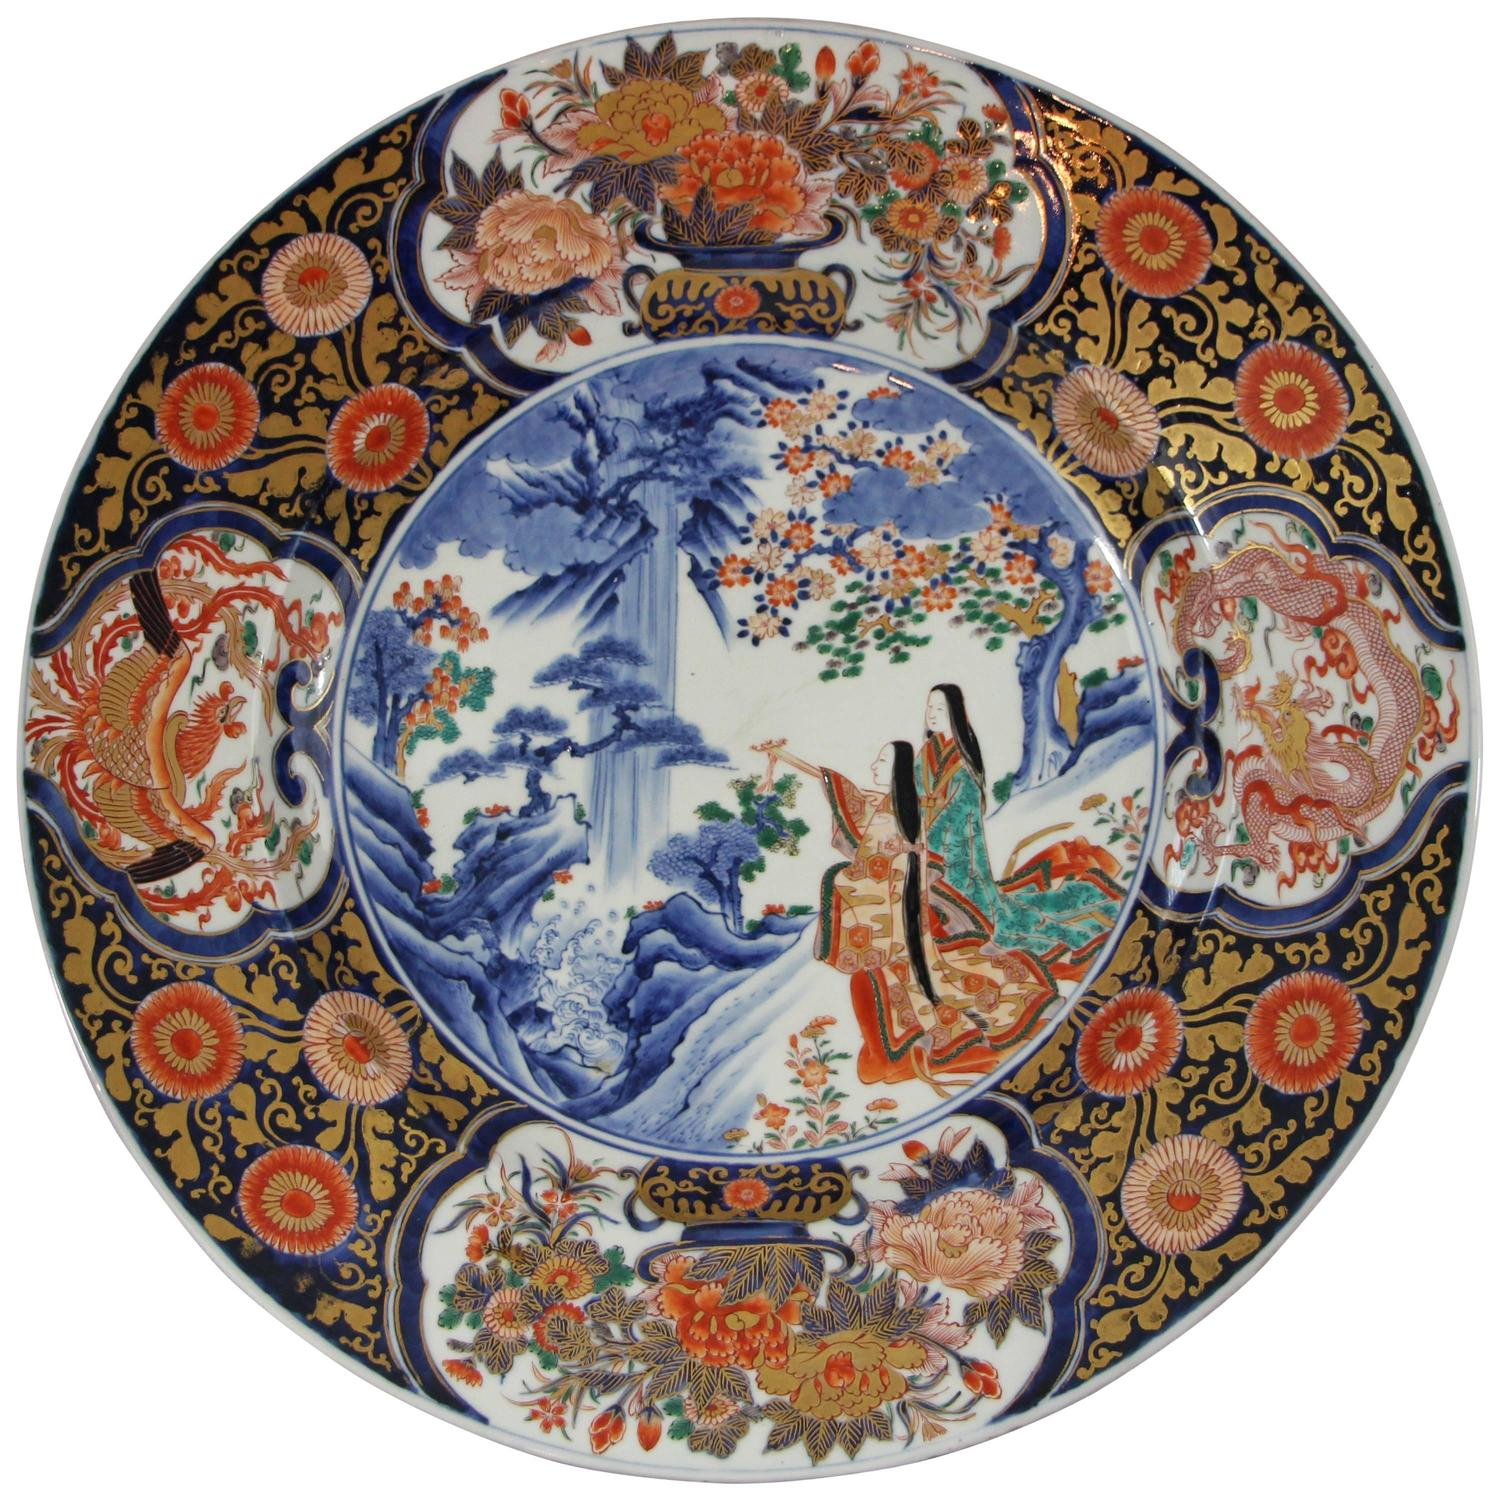 Imari Porcelain Charger Plate At 1stdibs